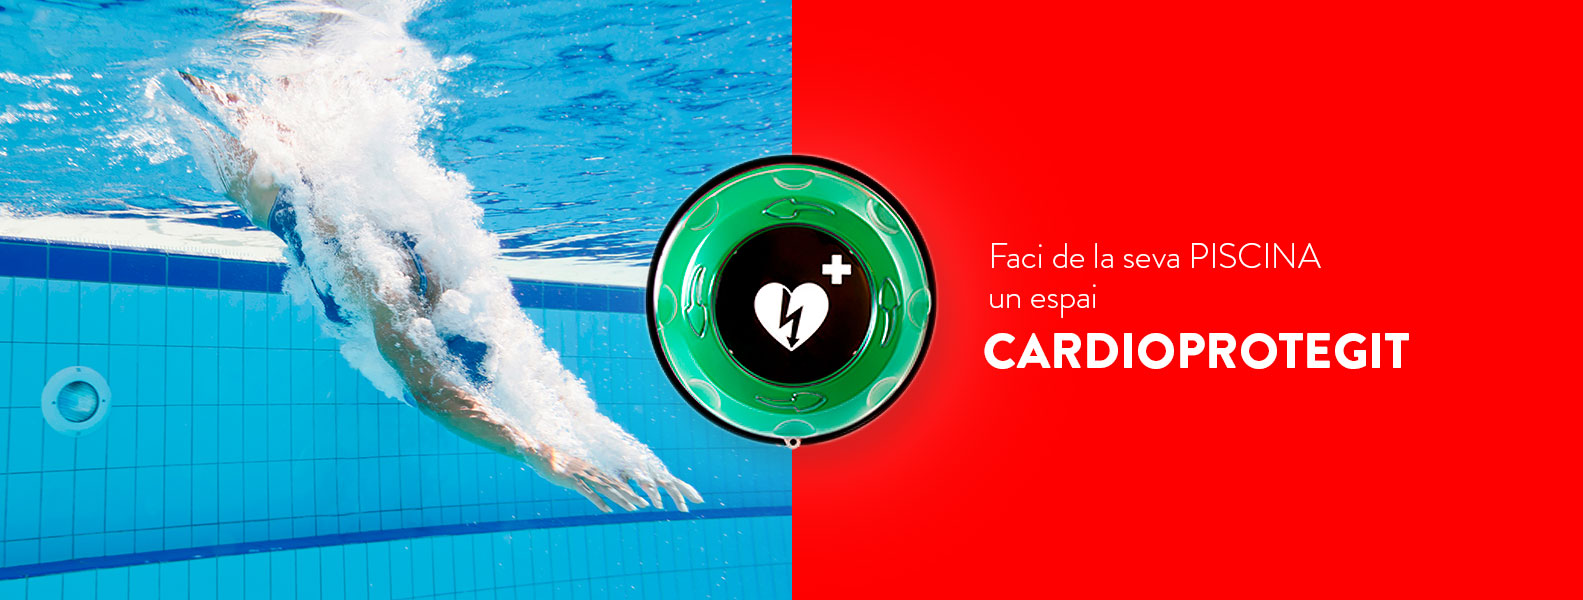 slides_cardiopas___piscina_cat